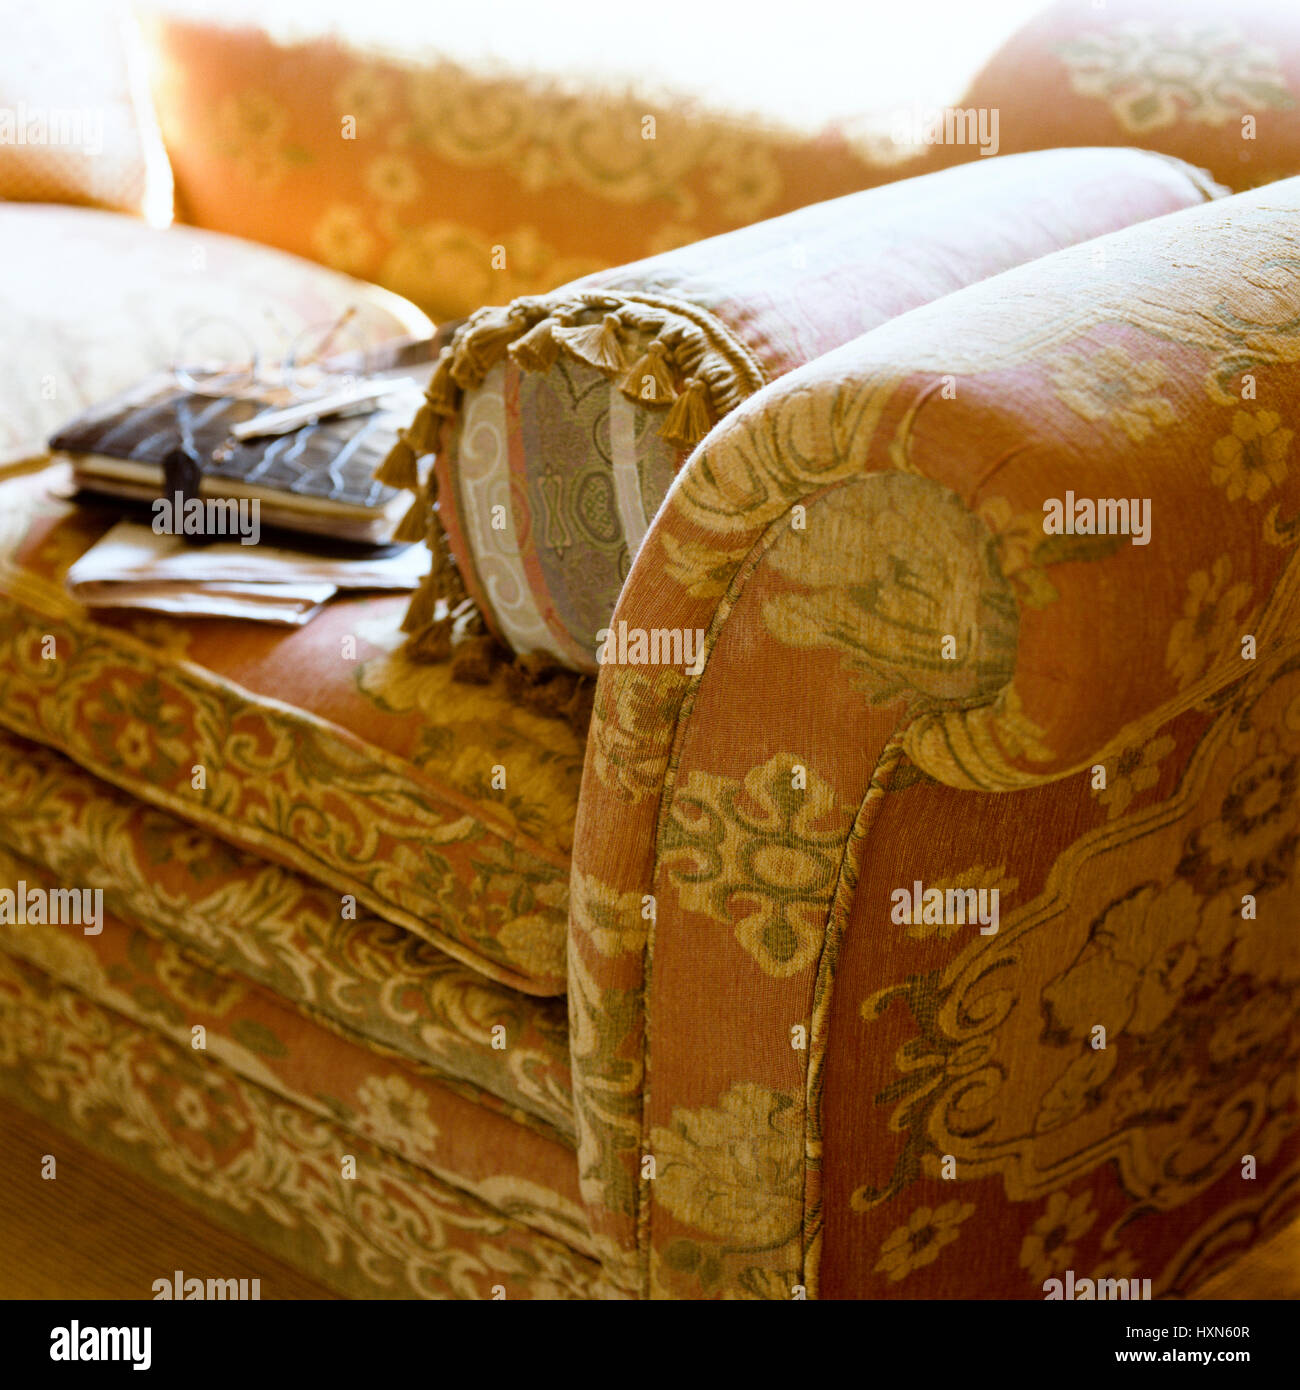 Cushion on floral patterned sofa. - Stock Image